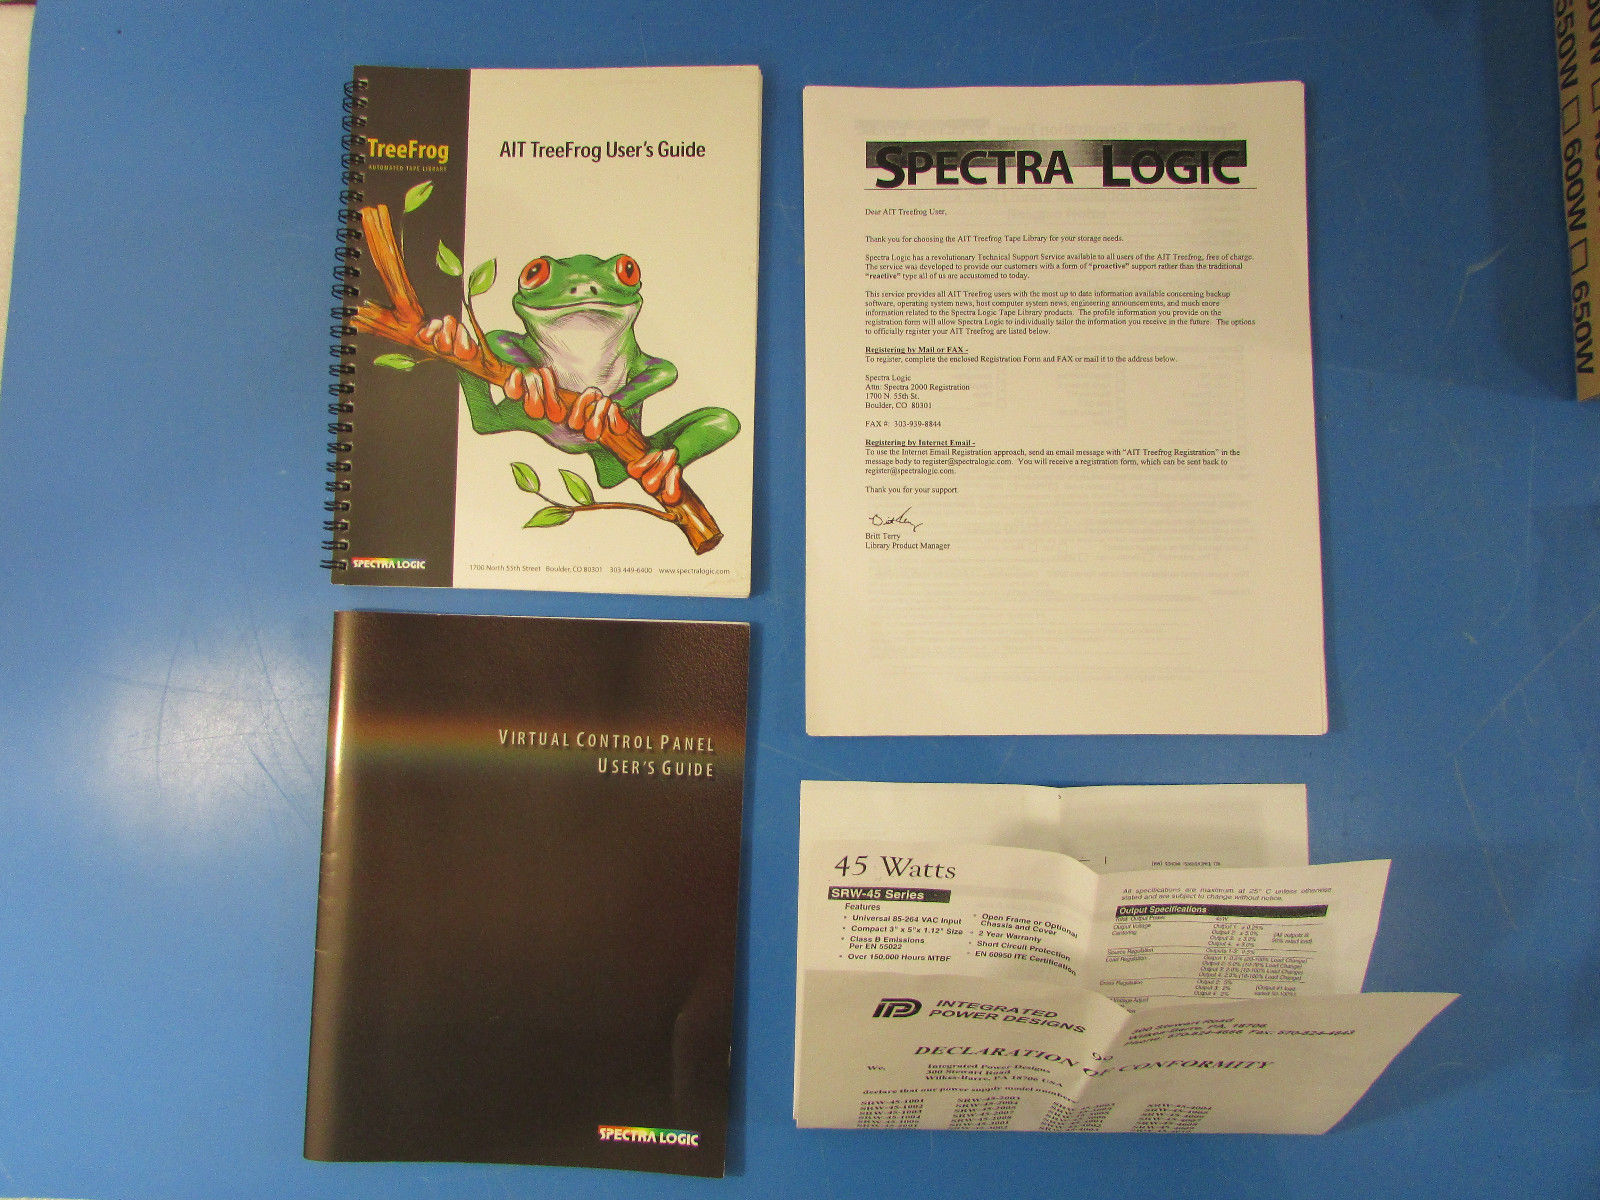 Spectra logic ait treefrog users guide and 50 similar items spectra logic ait treefrog users guide virtual control panel users guide publicscrutiny Choice Image